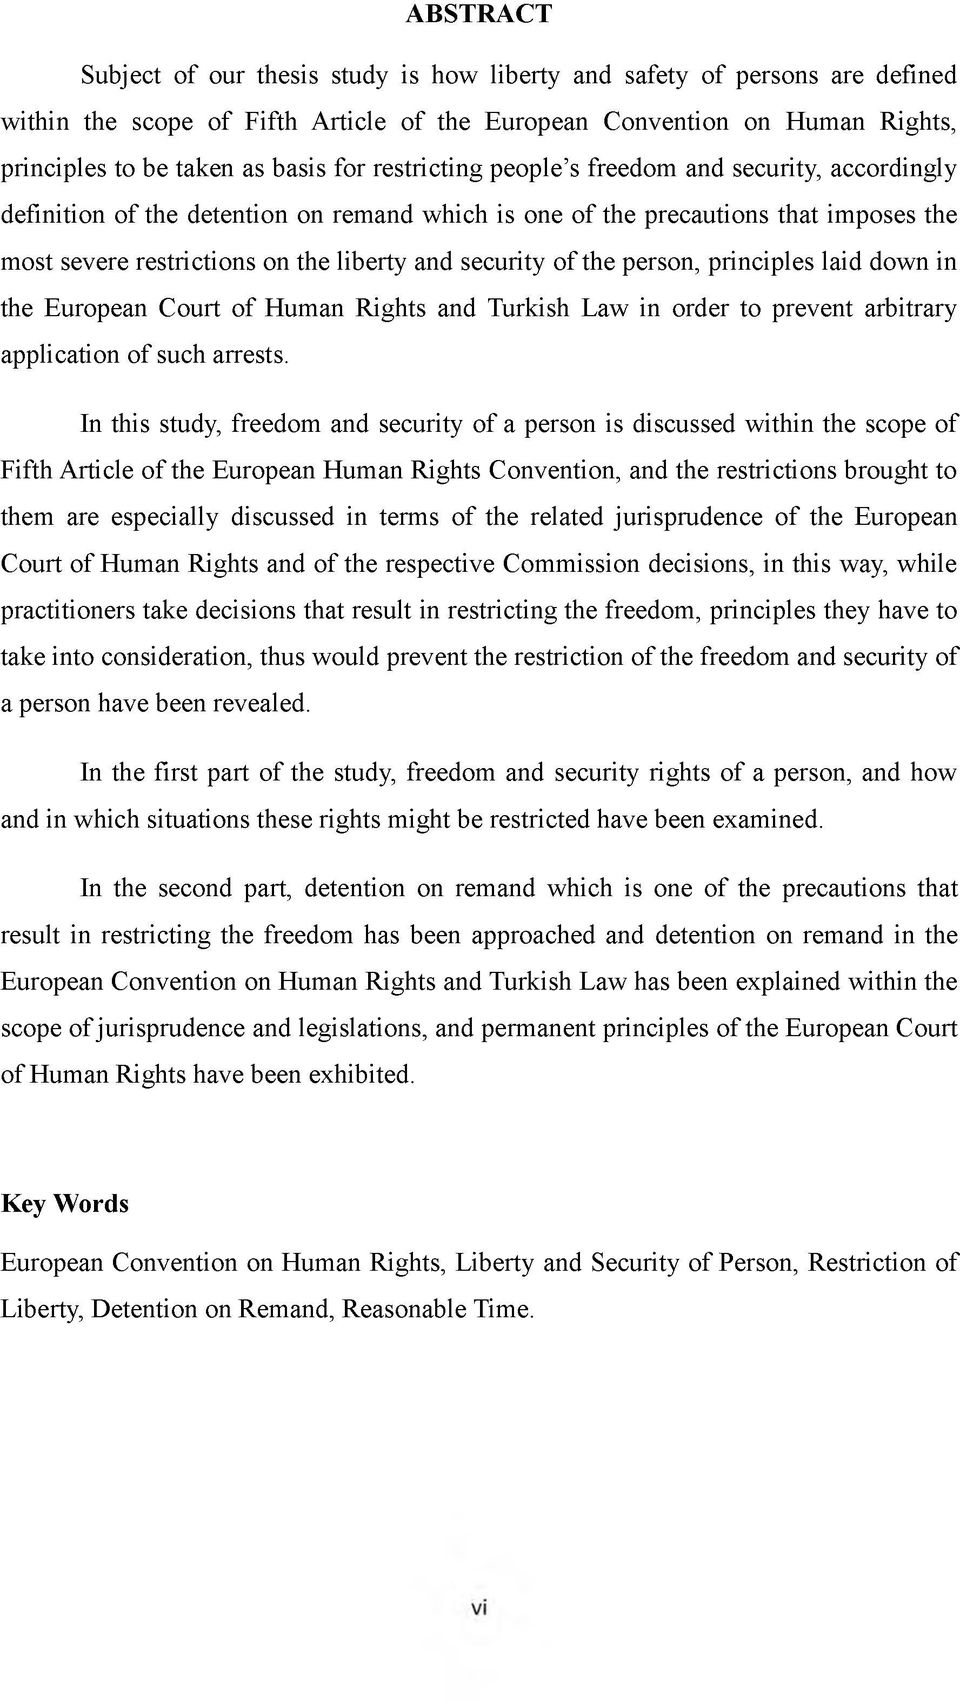 the person, principles laid down in the European Court of Human Rights and Turkish Law in order to prevent arbitrary application of such arrests.